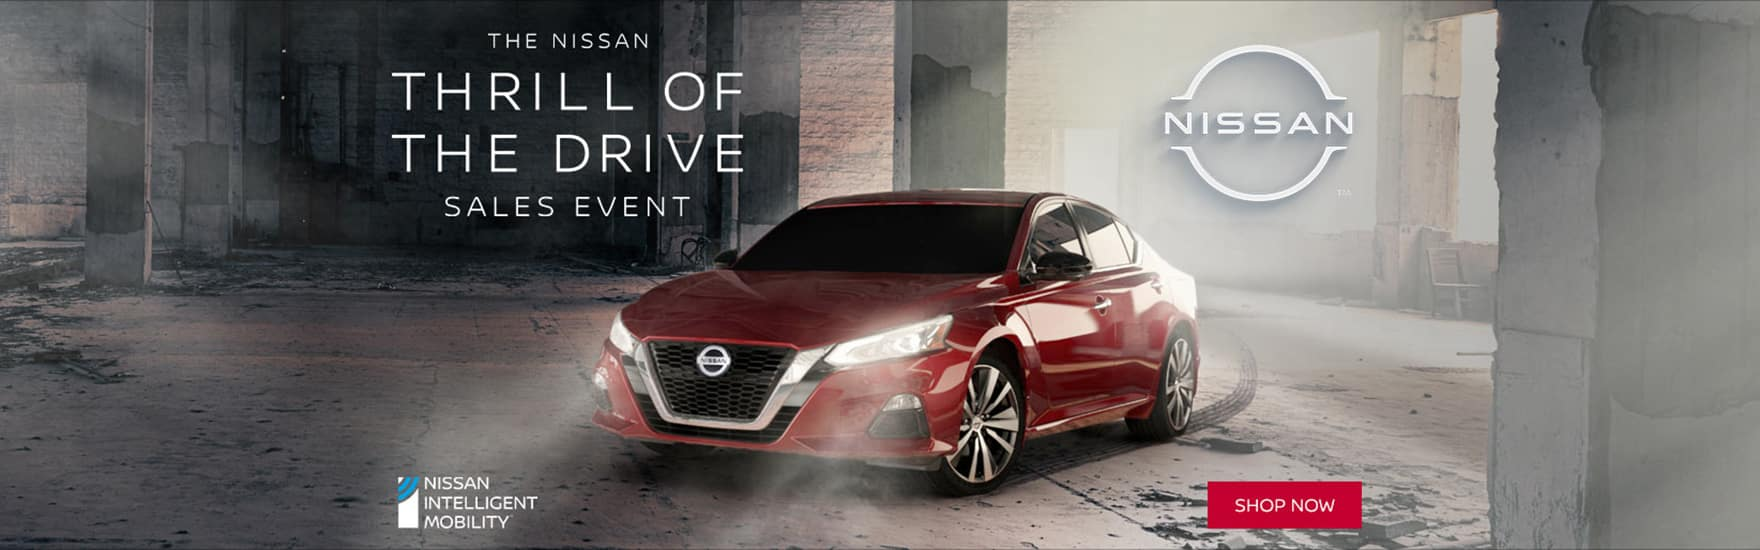 Nissan_of_.Lumberton_Thrill_of_the_drive_Sales_Event